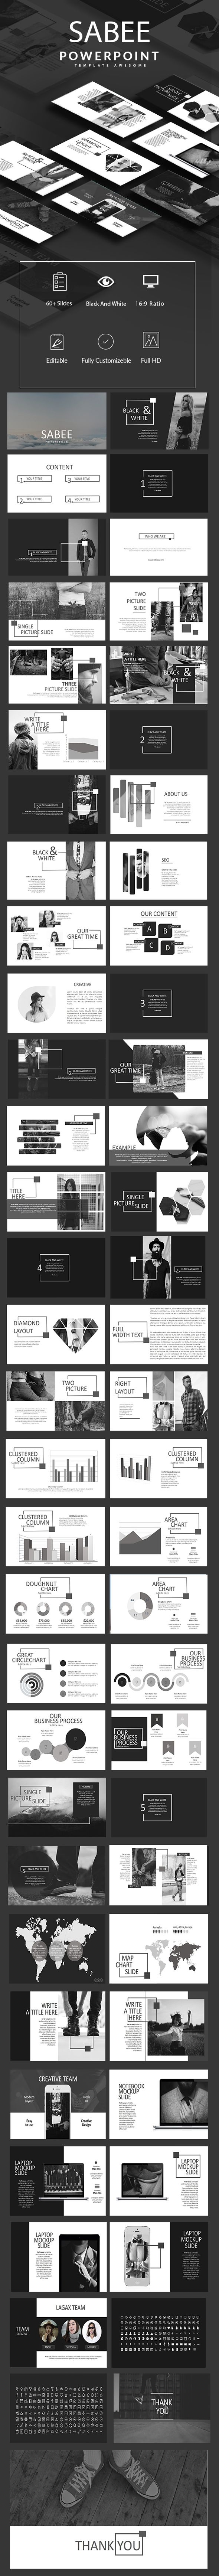 Sabee Powerpoint Template (PowerPoint Templates)